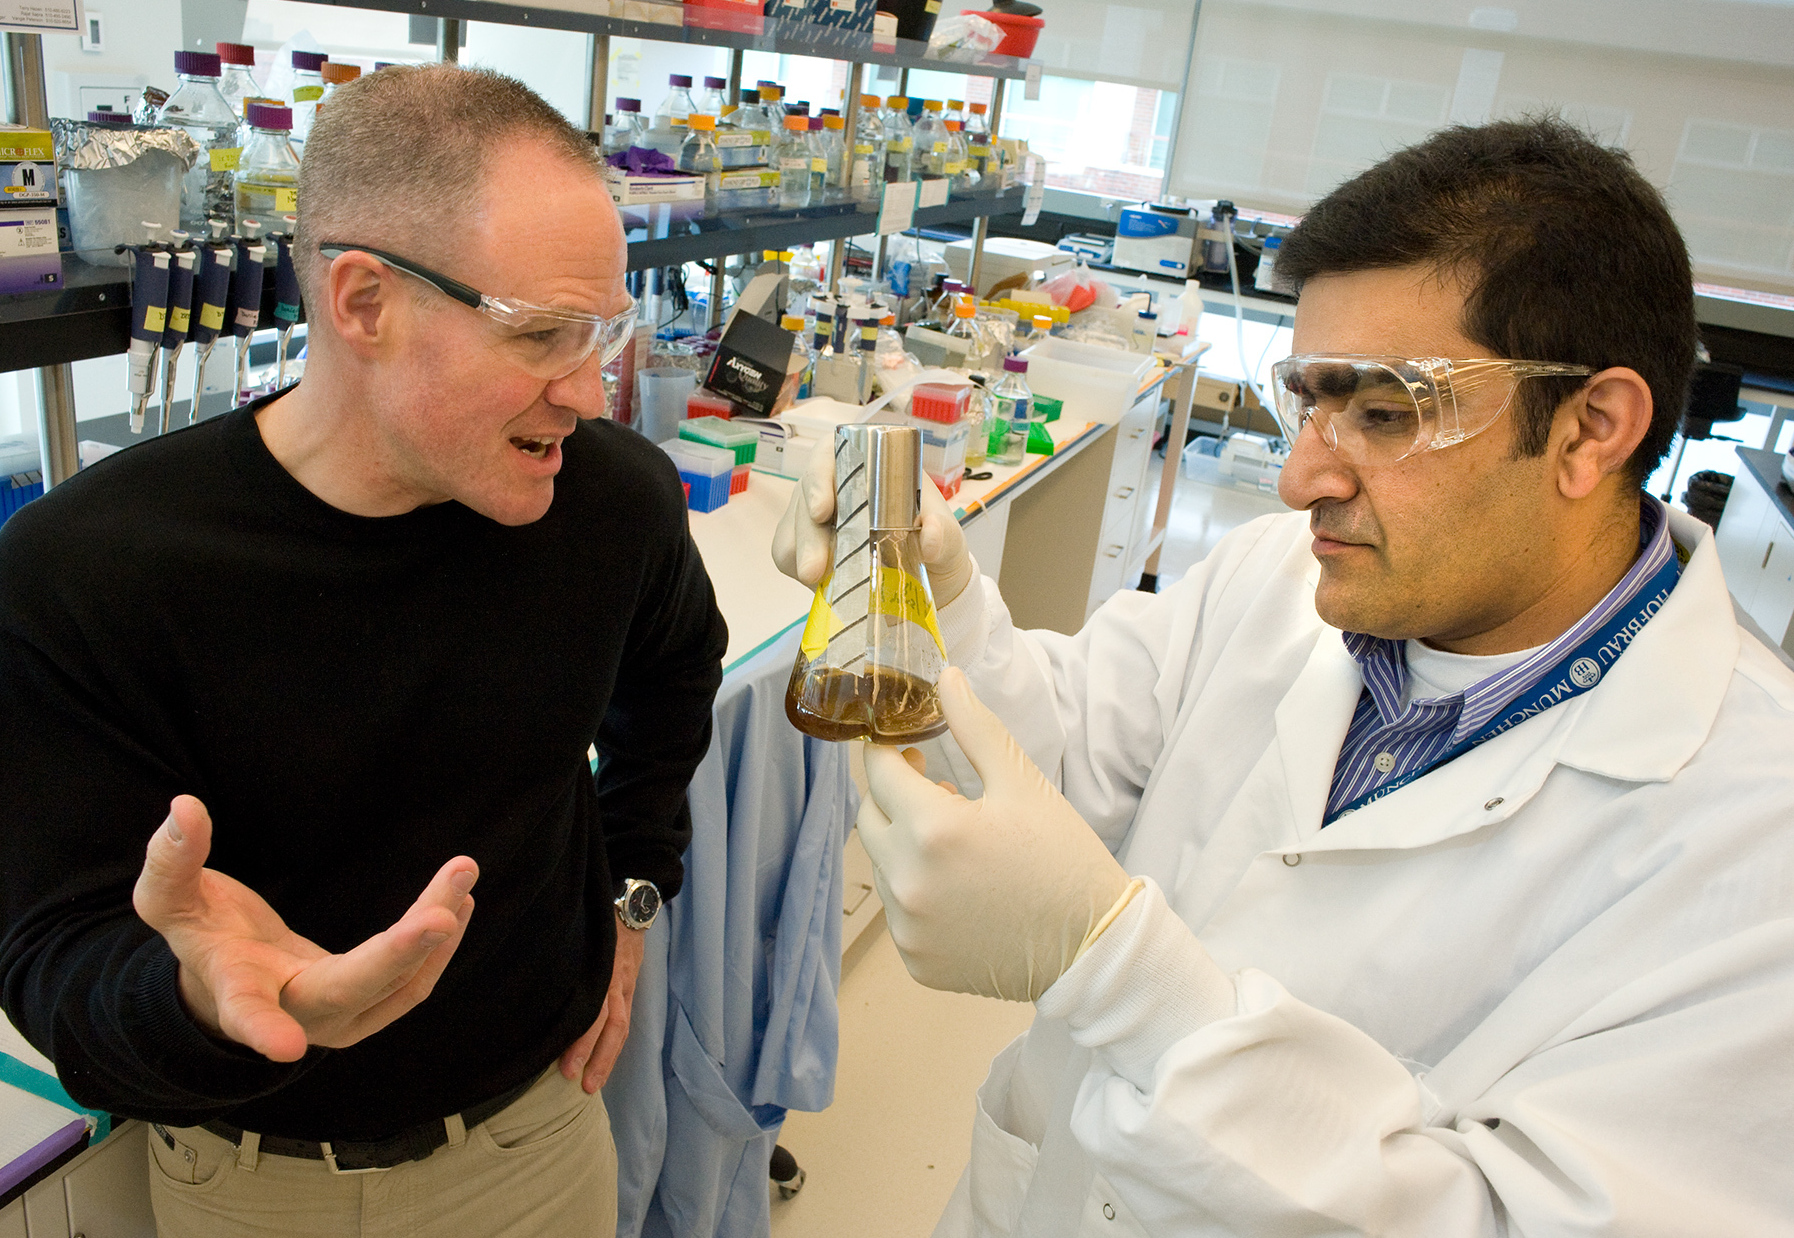 Put Down Oil Drill, Pick Up The Test Tube: Making Fuel From Yeast